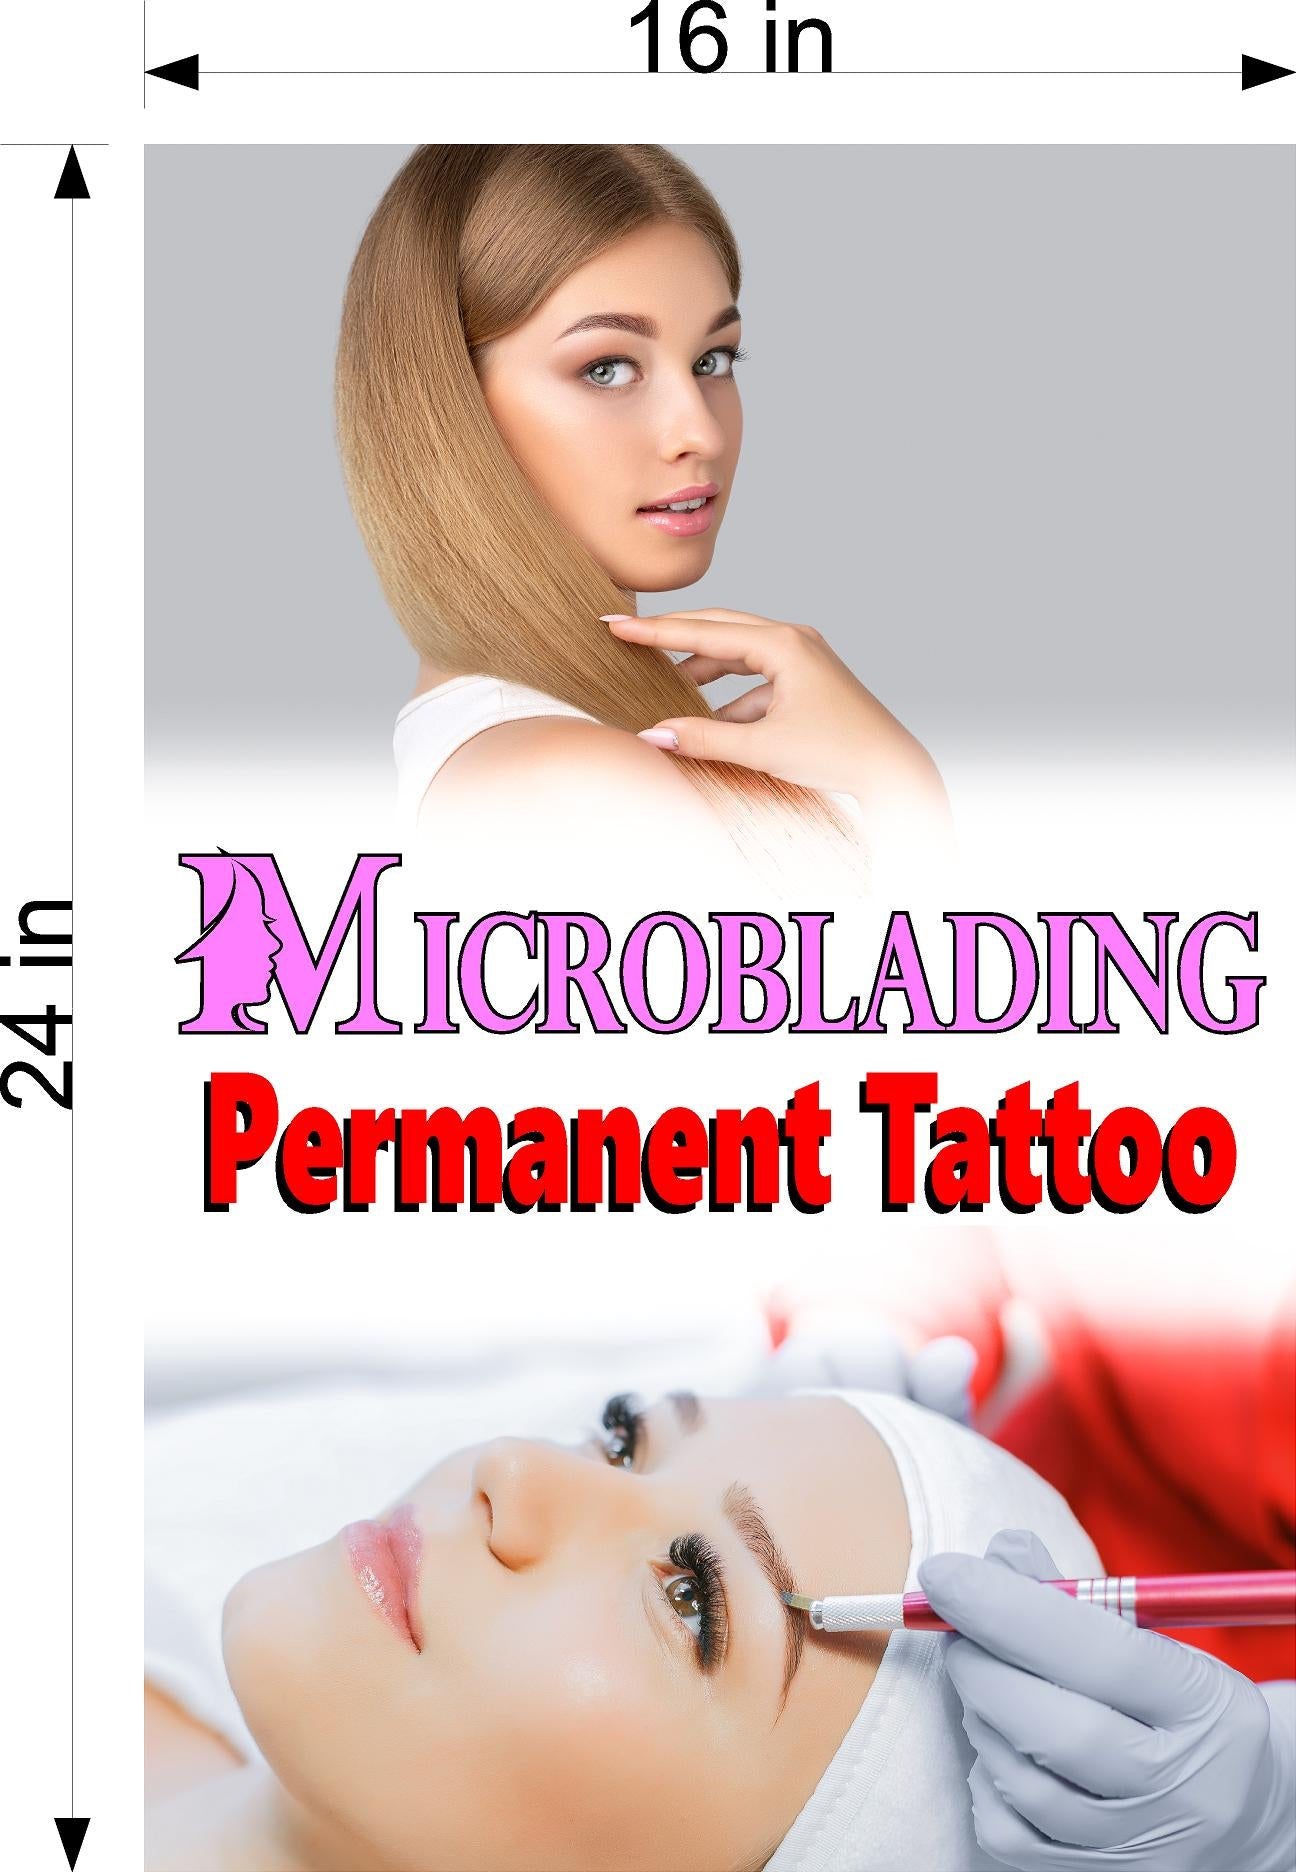 Microblading 14 Wallpaper Fabric Poster with Adhesive Backing Wall Interior Services Permanent Makeup Tattoo Vertical